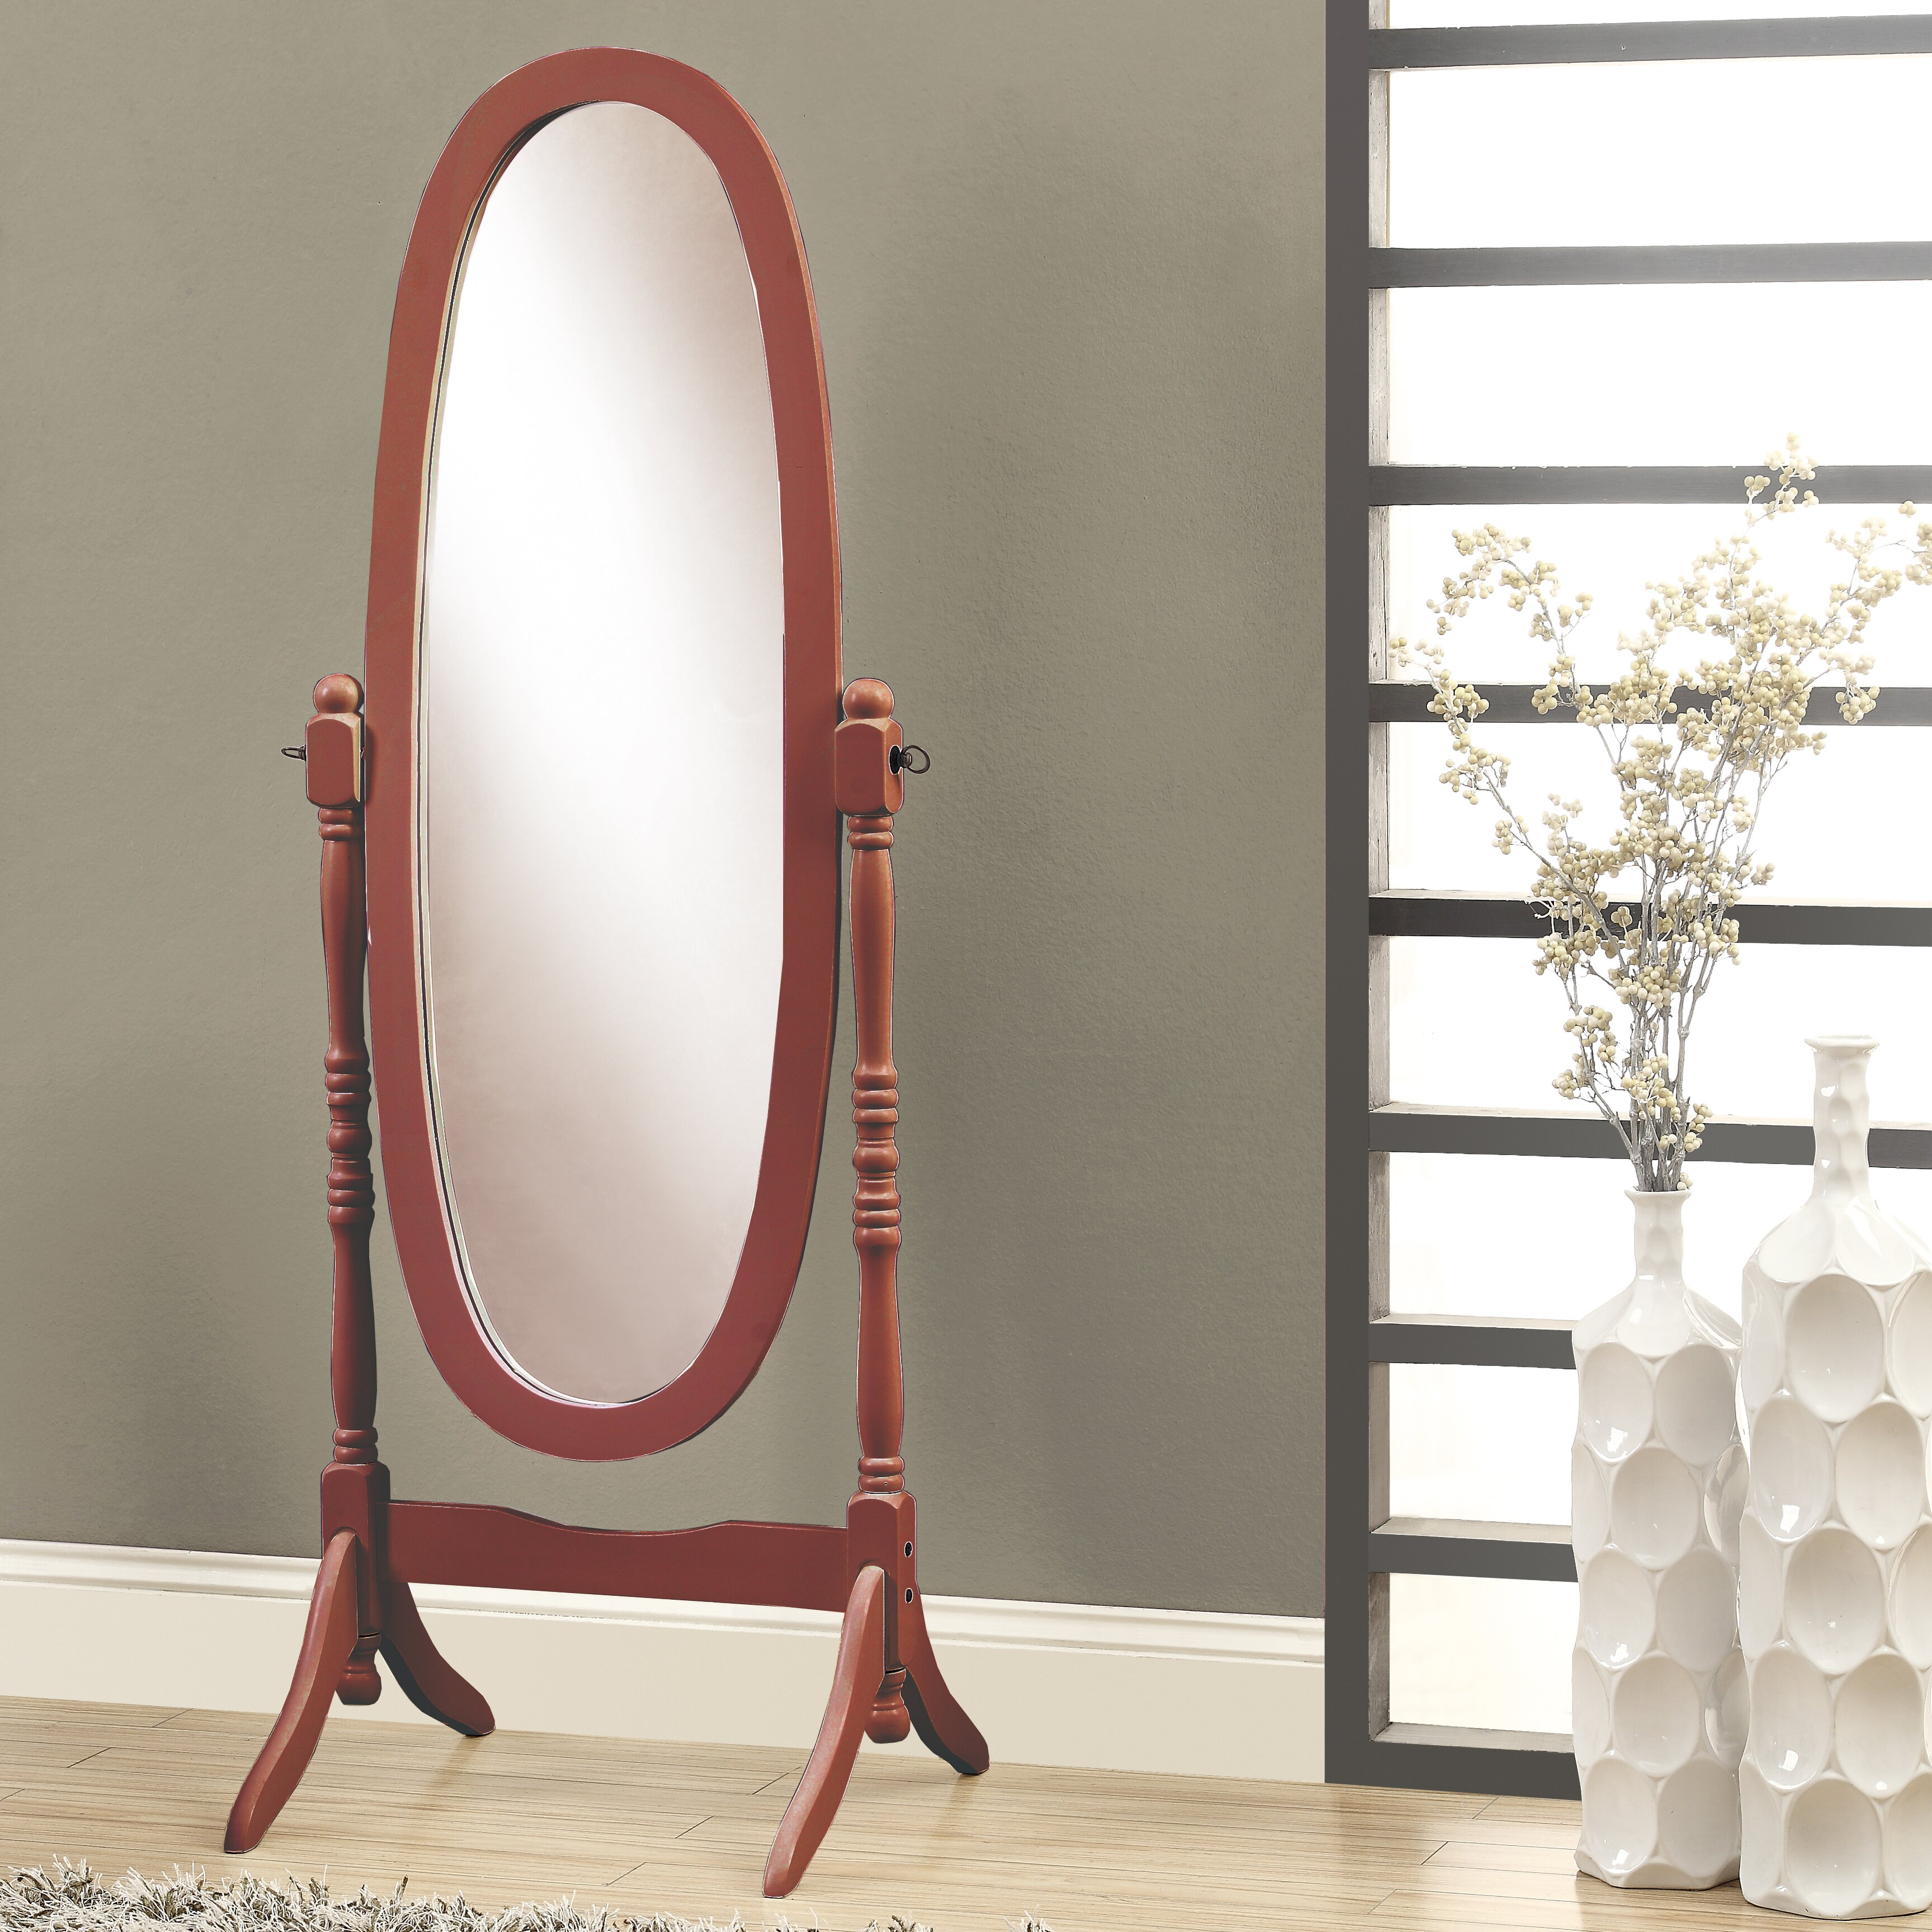 Monarch specialties inc oval wood frame standing mirror for Standing mirror frame